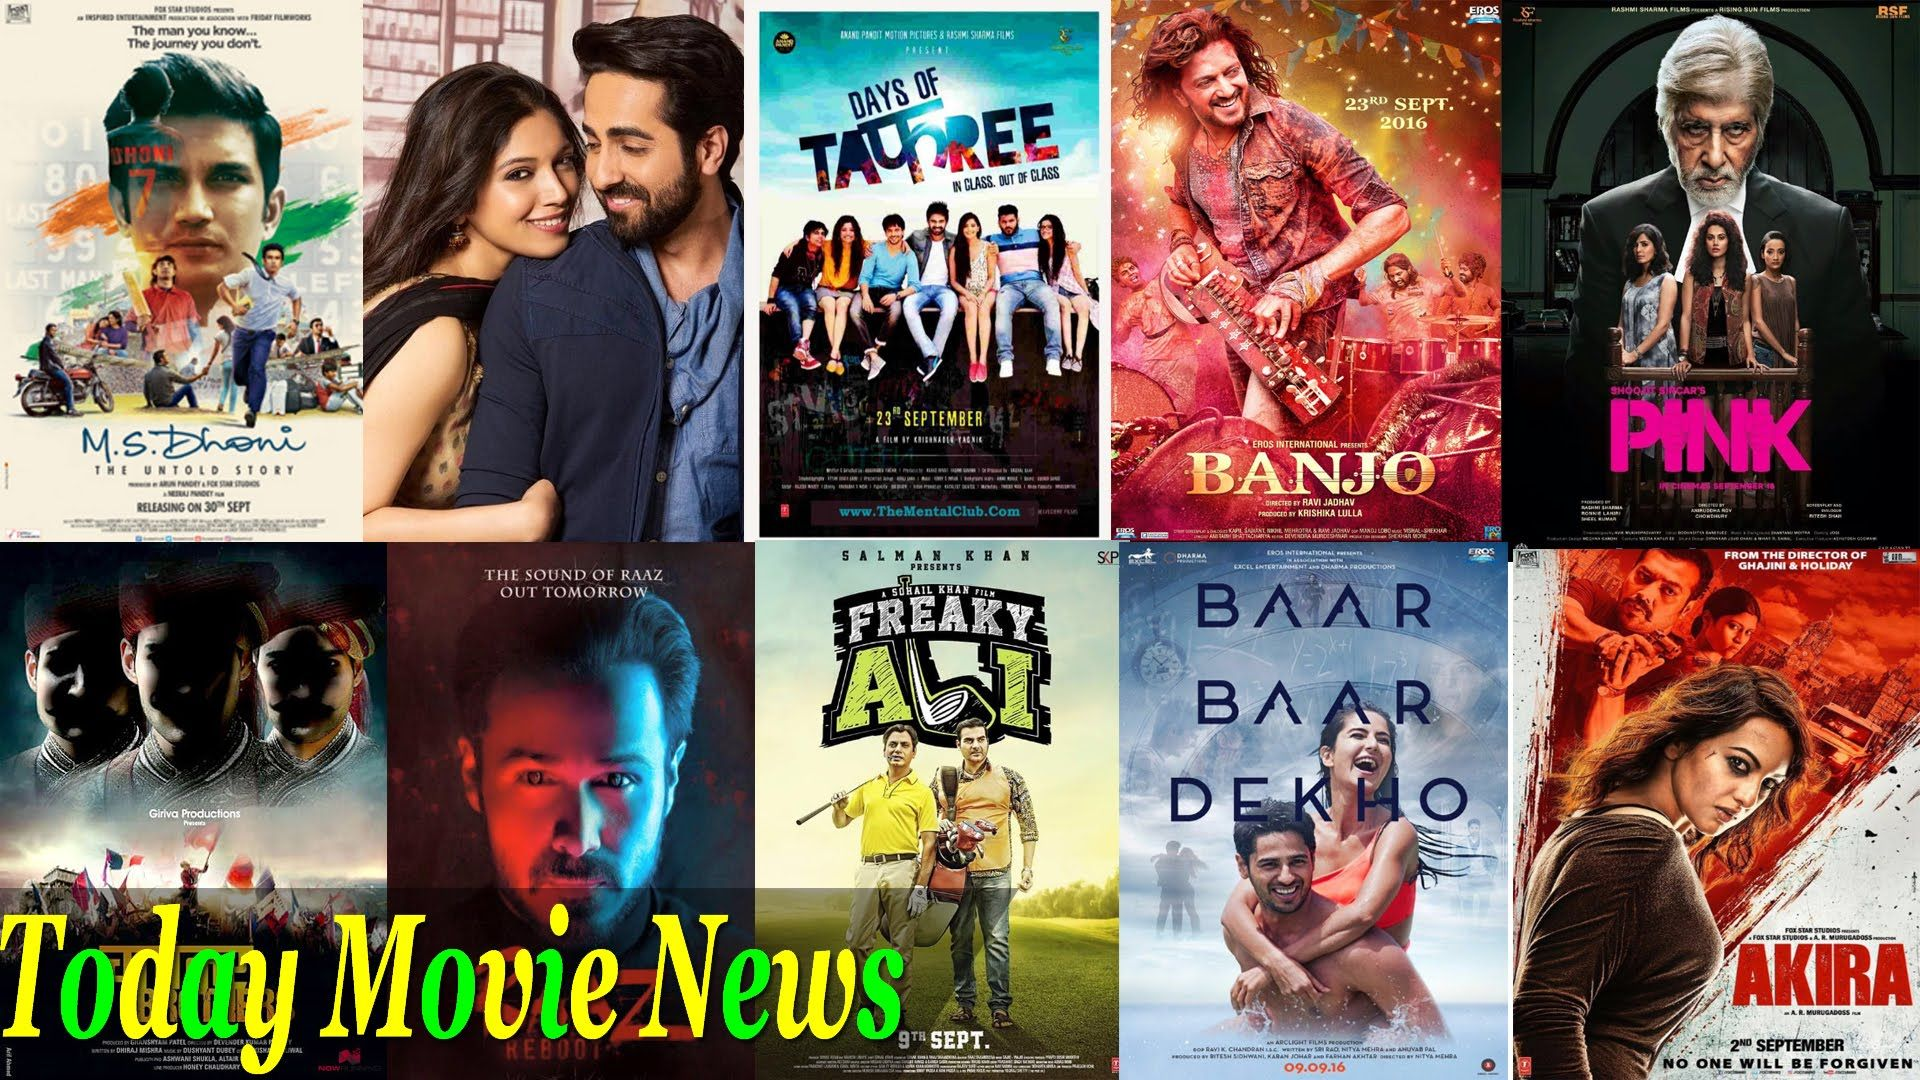 Today Movie News Top 10 Bollywood Movies Release In September 2016 L Today Movies Hindi Movies Bollywood Movies